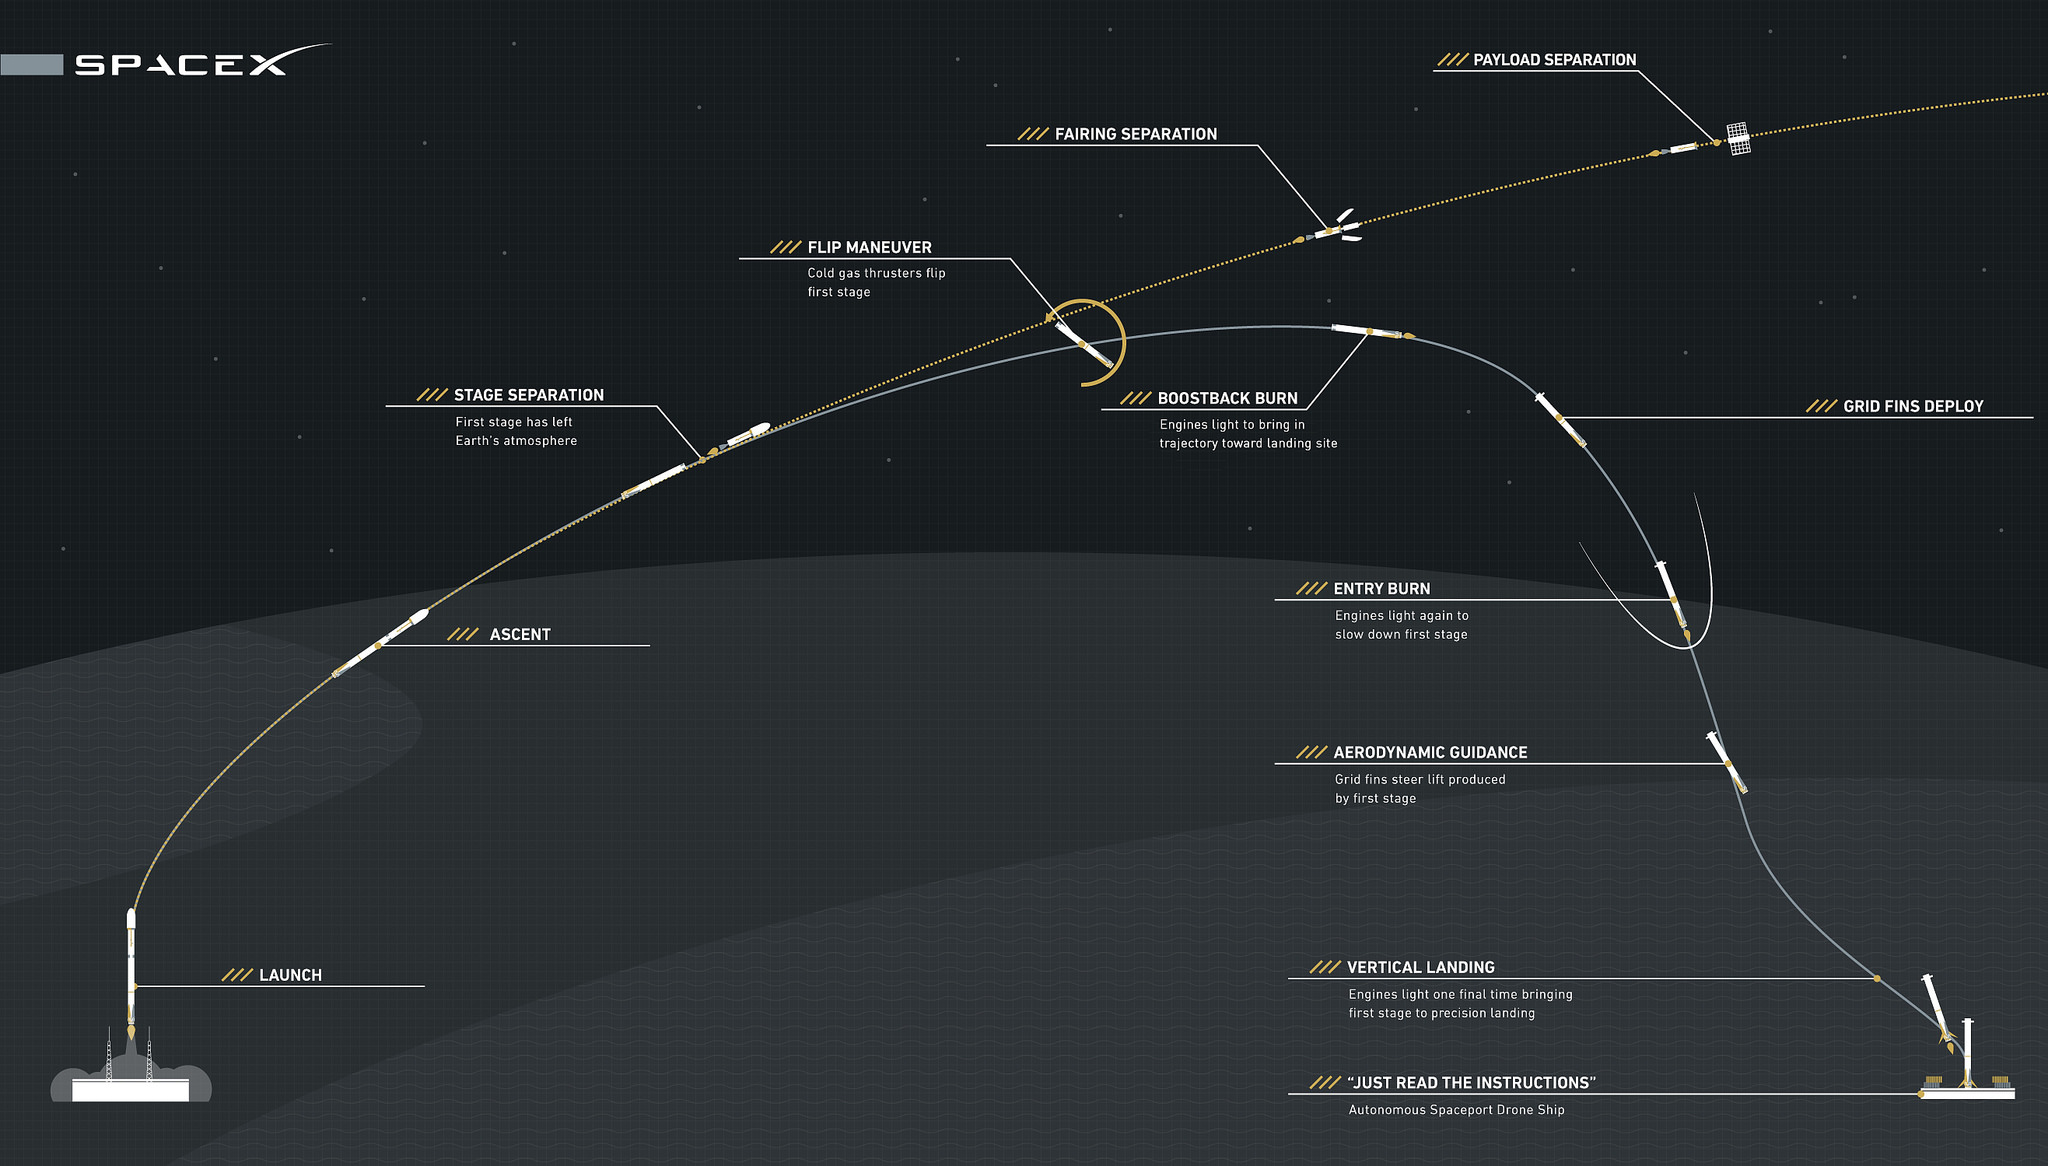 This graphic provided by SpaceX shows the major events during the Falcon 9 booster's descent. Credit: SpaceX